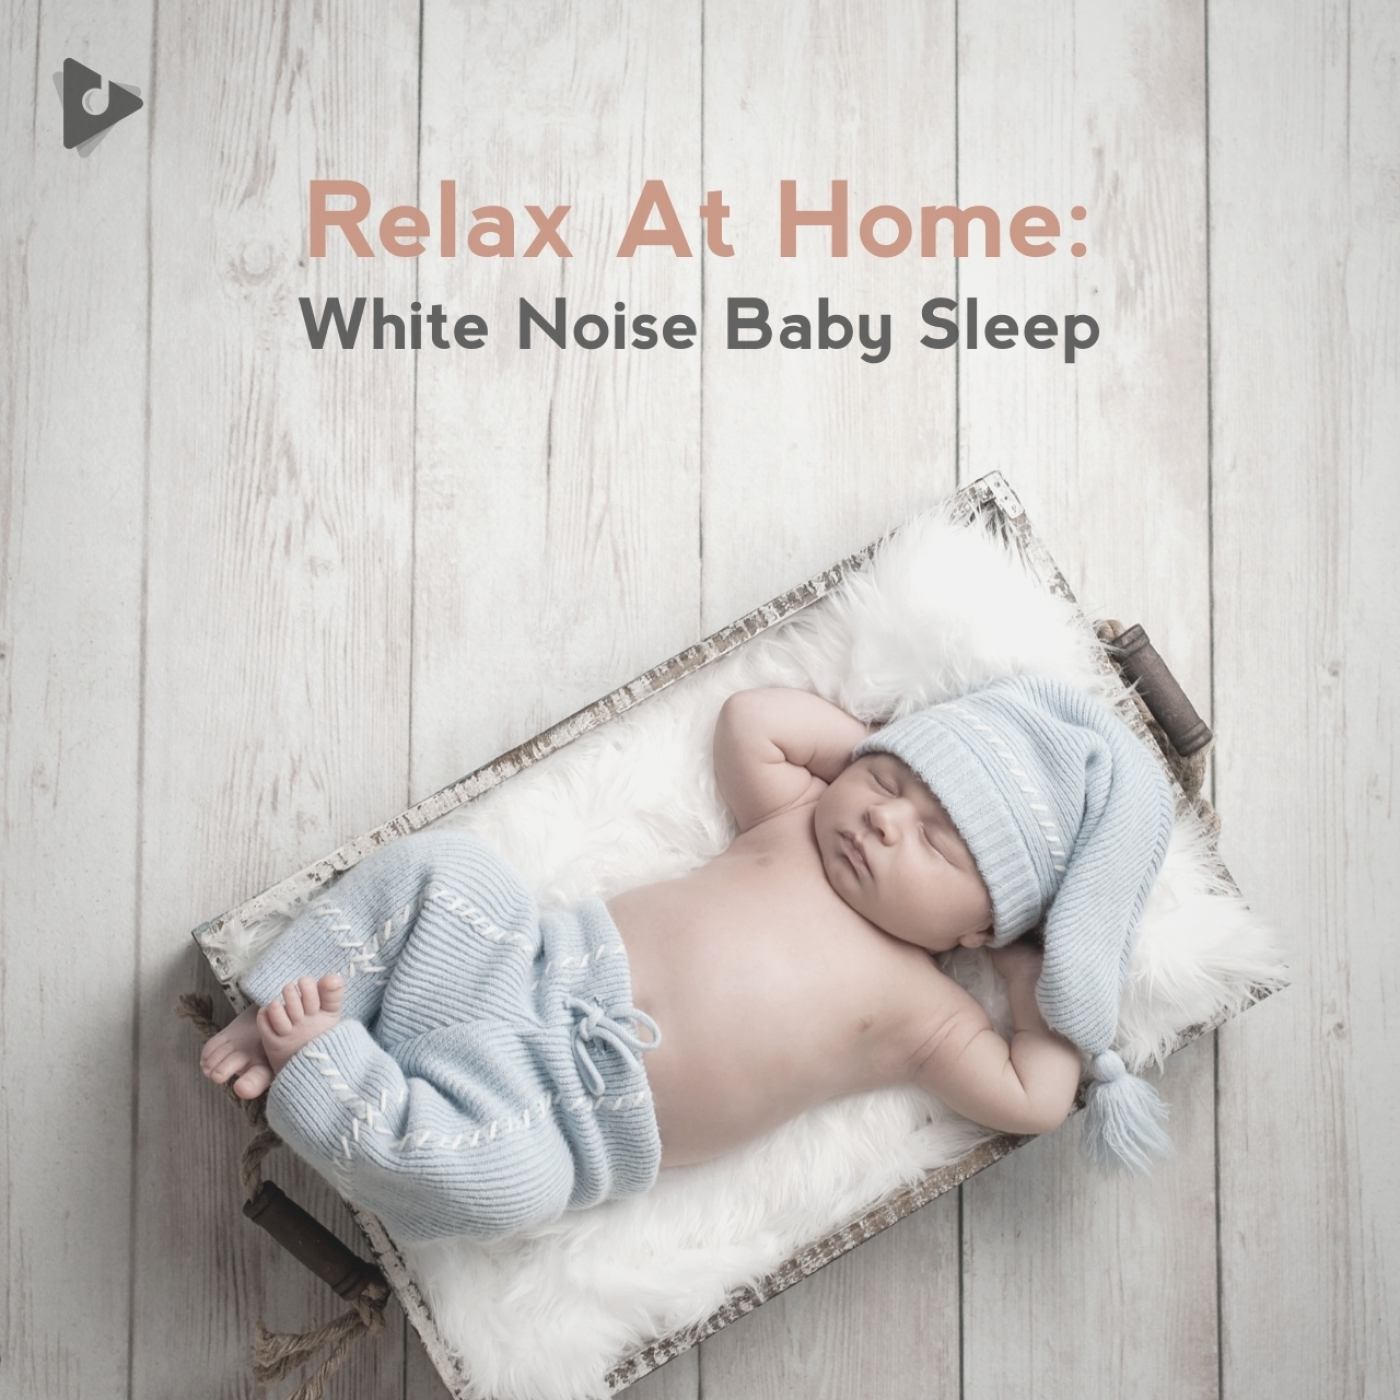 Stay-at-Home: White Noise Baby Sleep